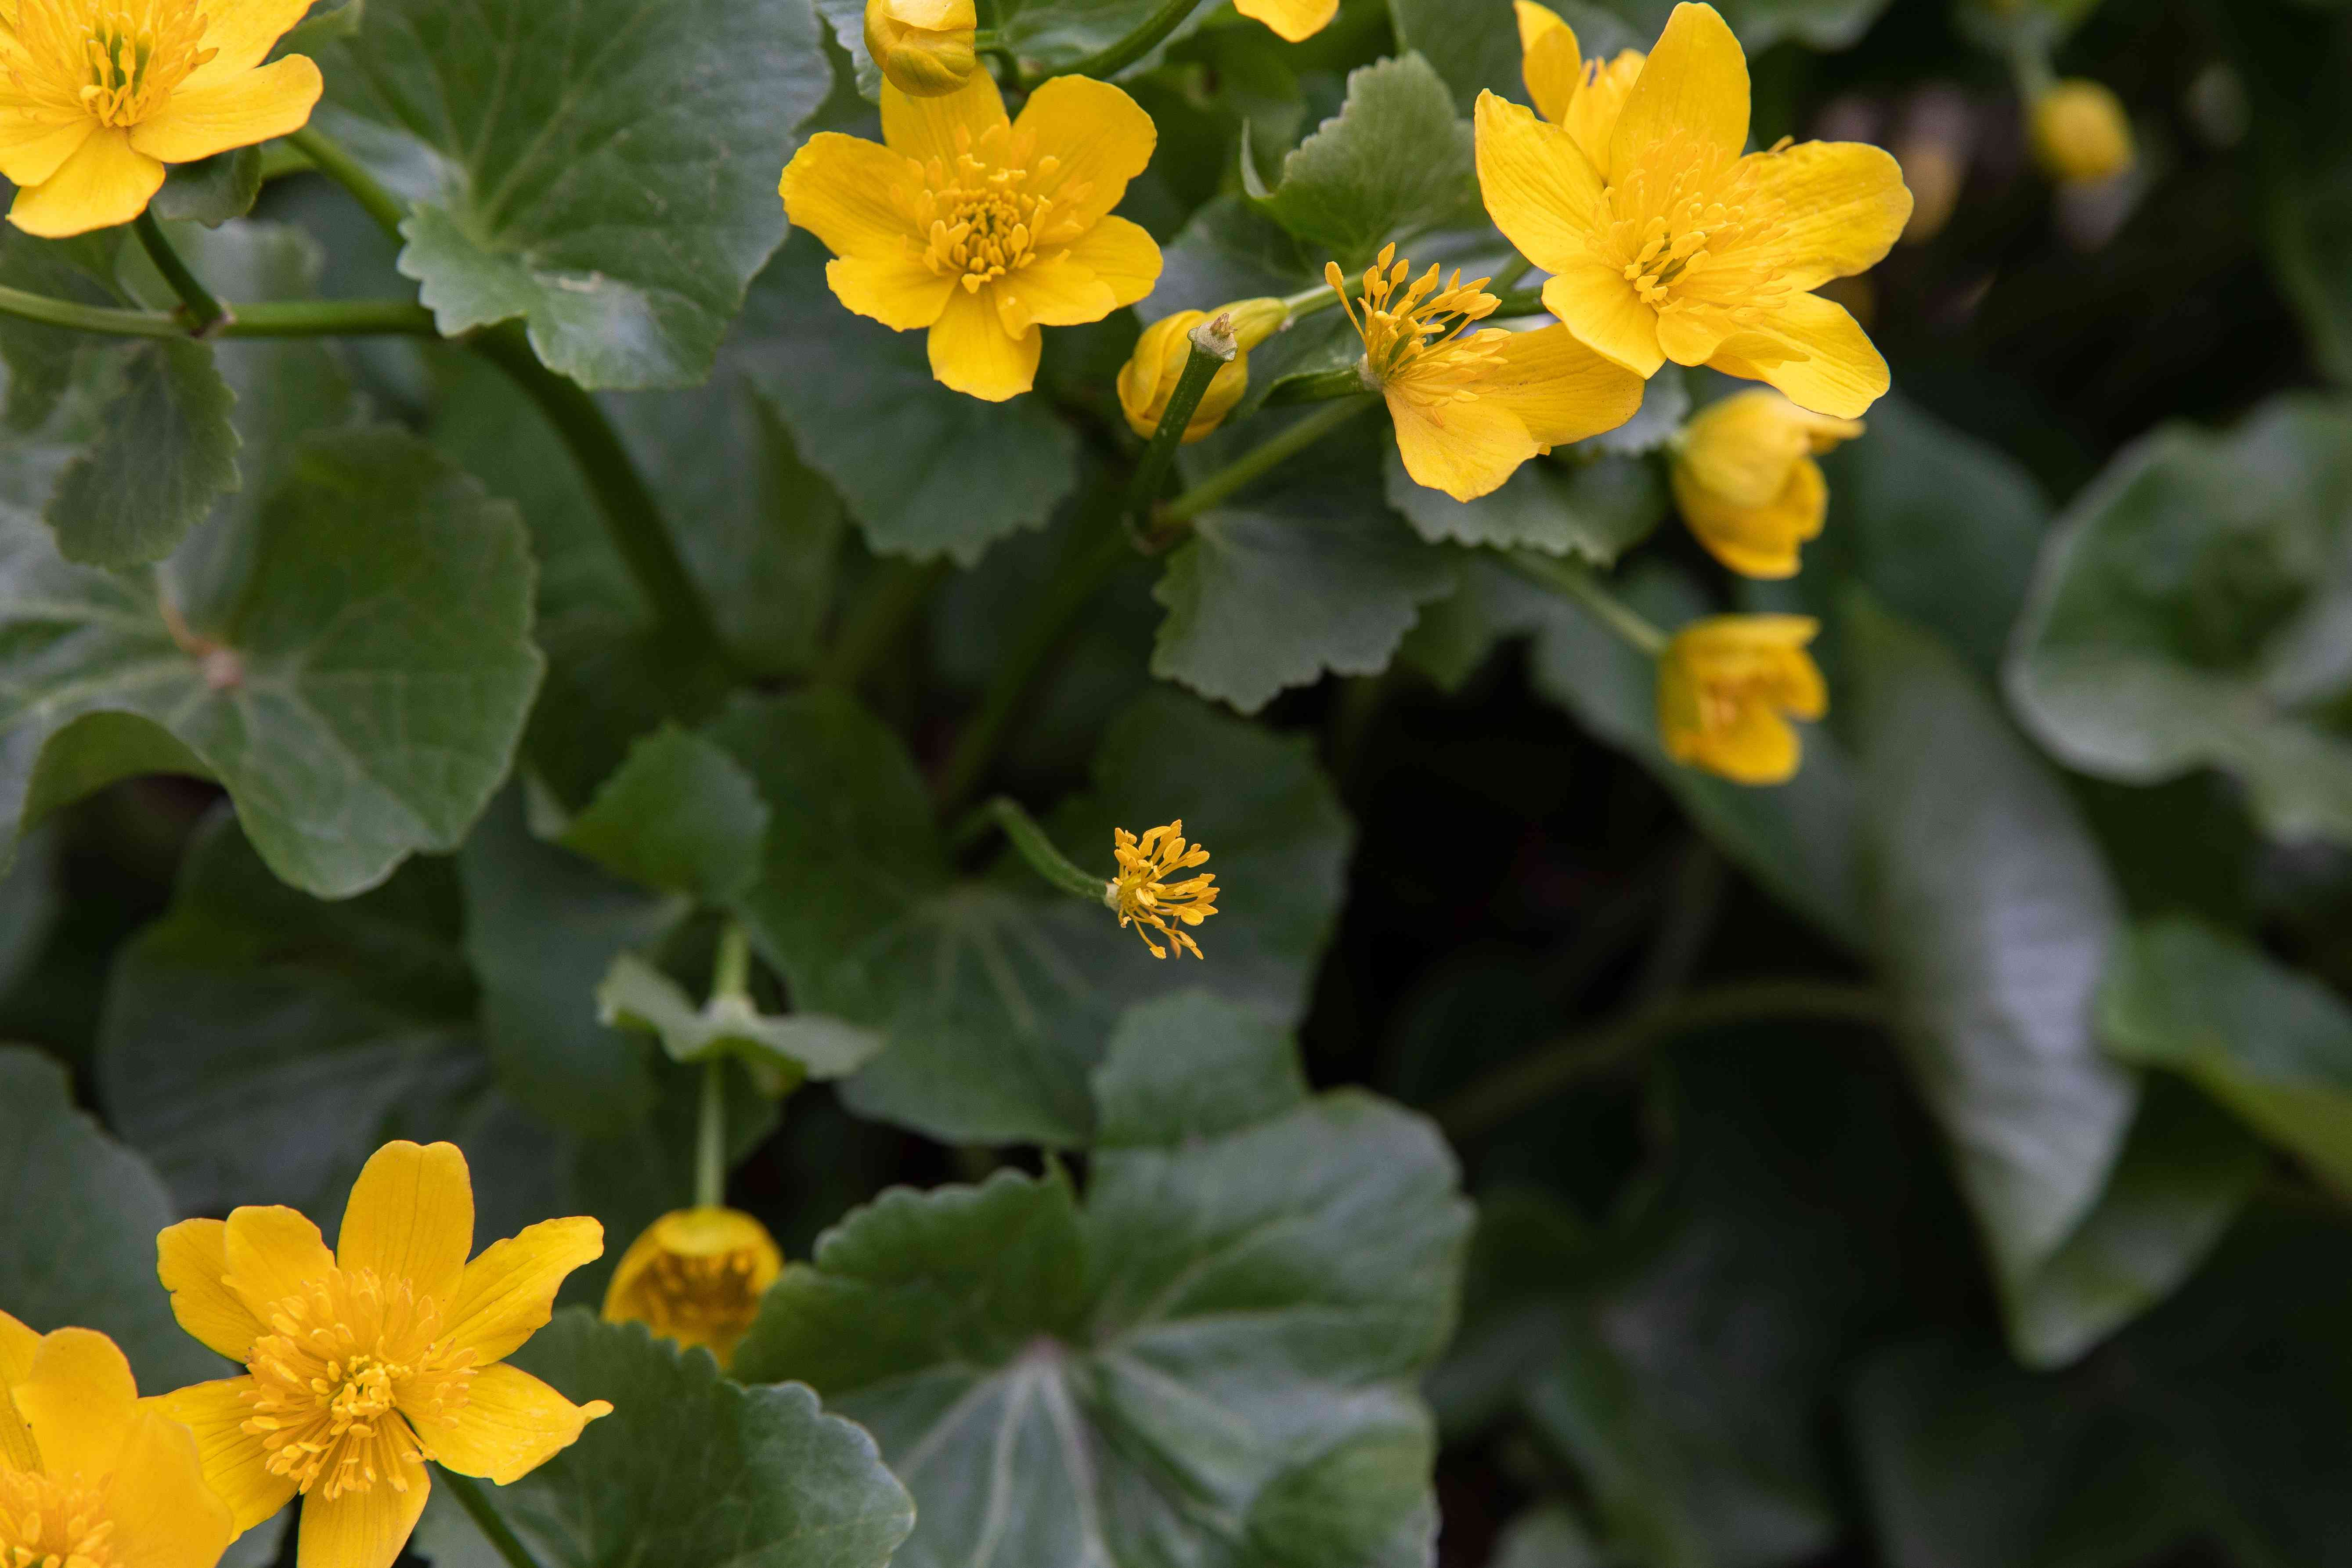 Marsh marigold plant with yellow sepals surrounded by rounded leaves